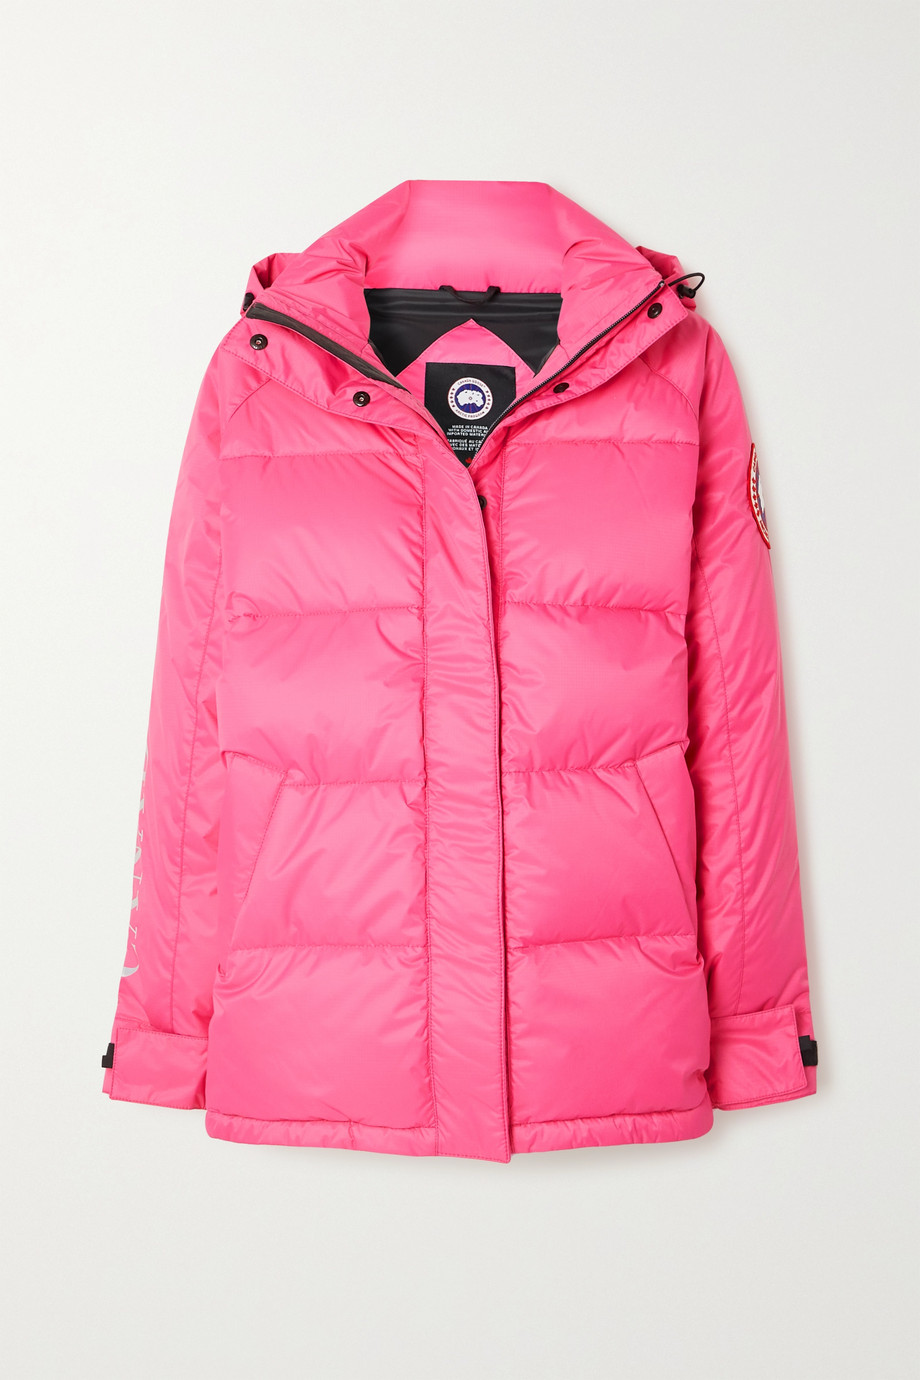 Canada Goose Approach hooded printed quilted shell down jacket